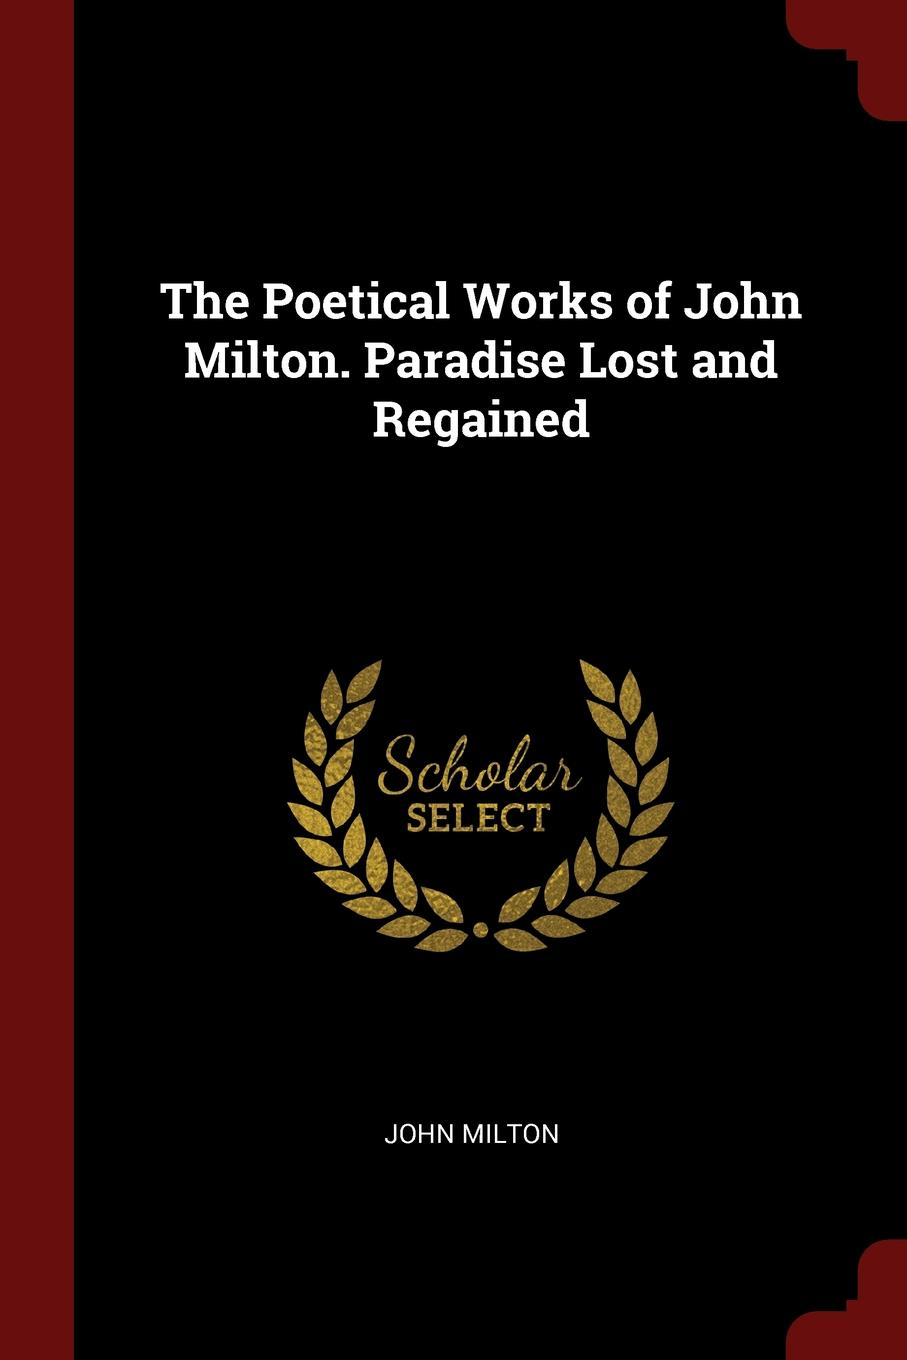 John Milton The Poetical Works of John Milton. Paradise Lost and Regained